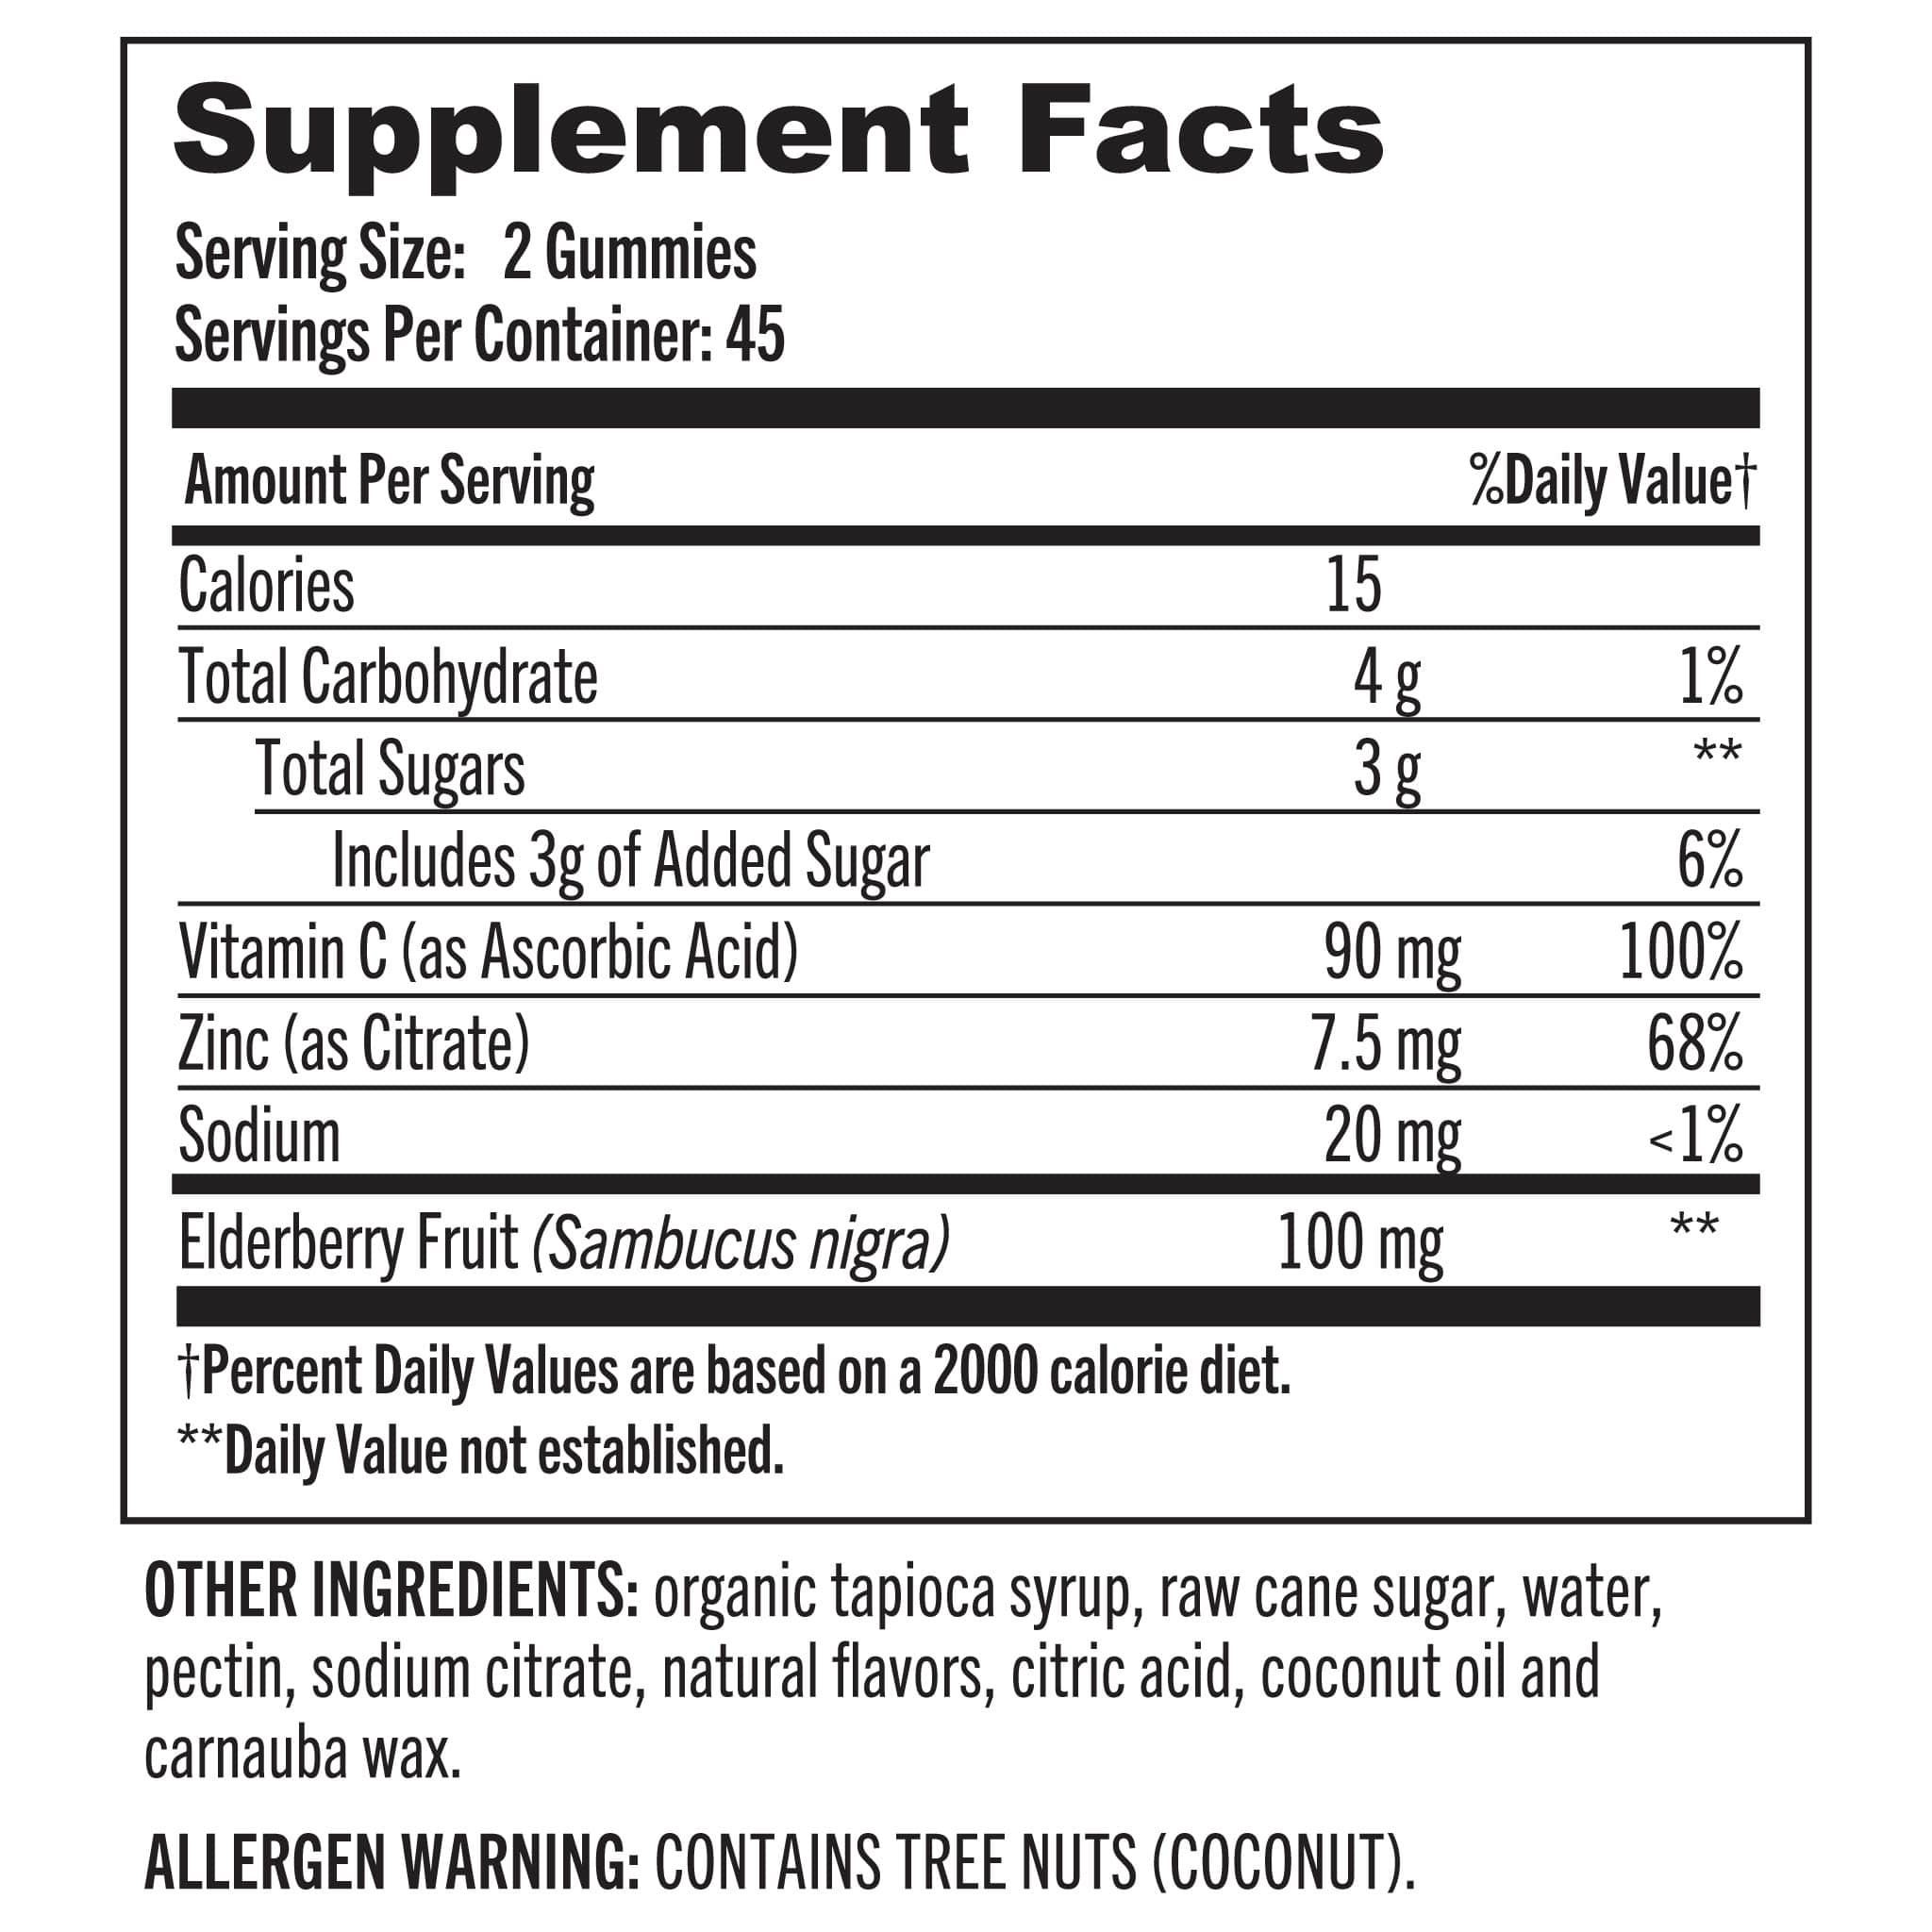 02 Grab The Gold Immune Elderberry Nutrition Facts 03.20